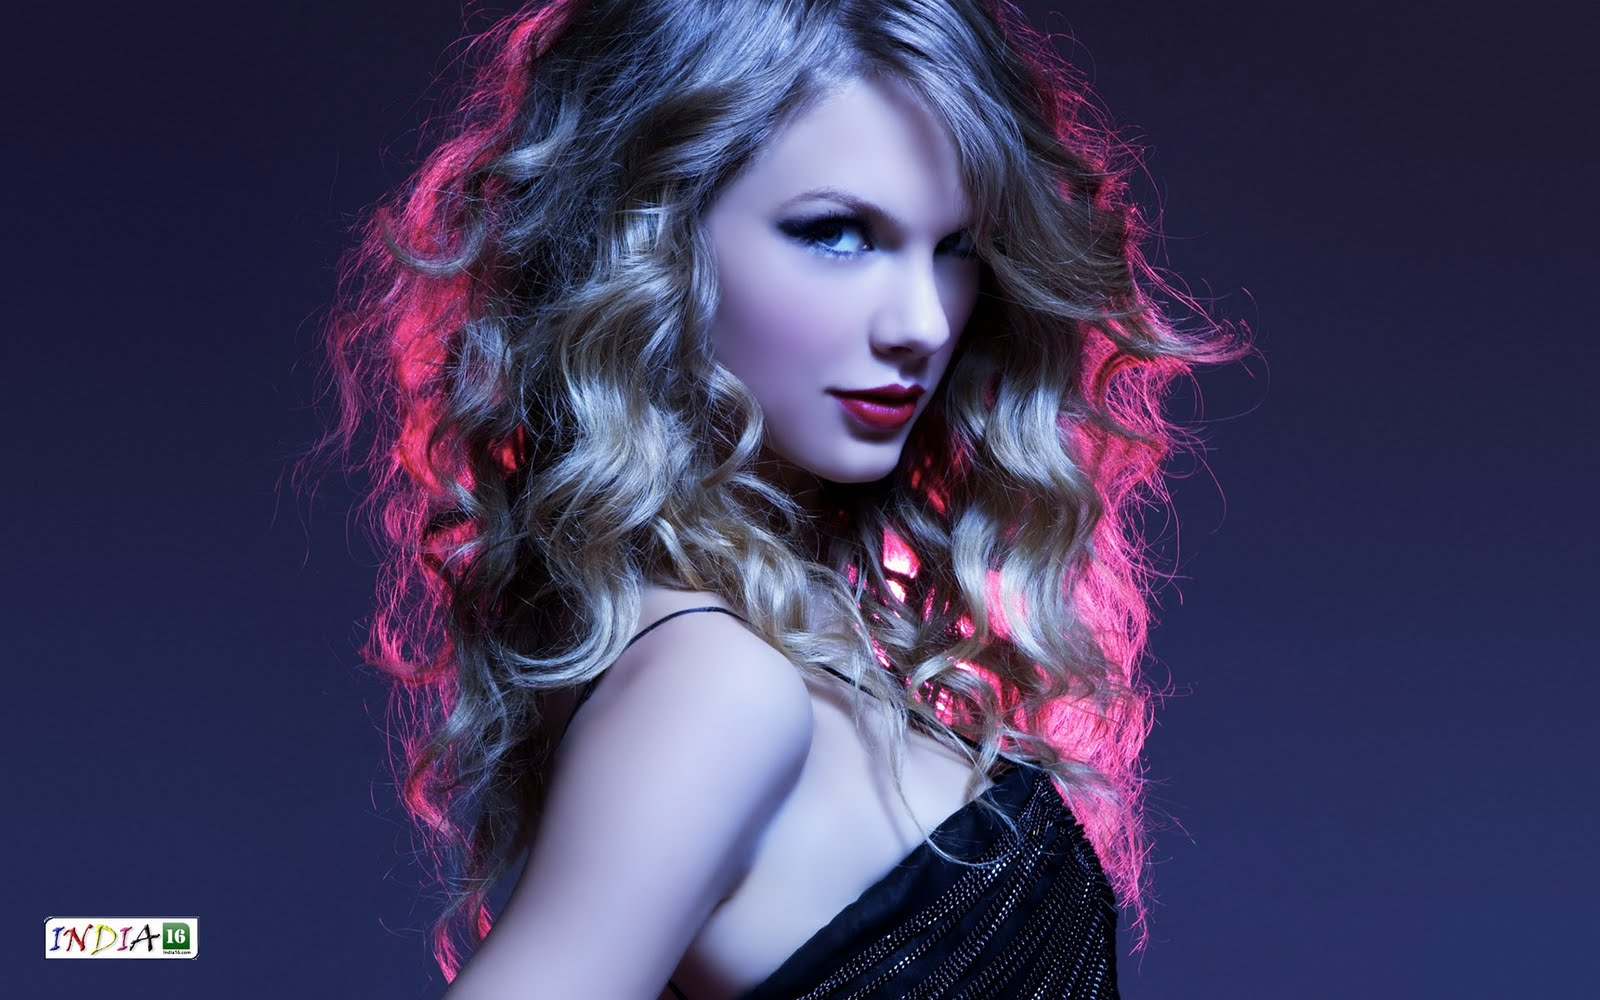 Awesomeness Wallpaper taylor swift hot wallpapers 1600x1000